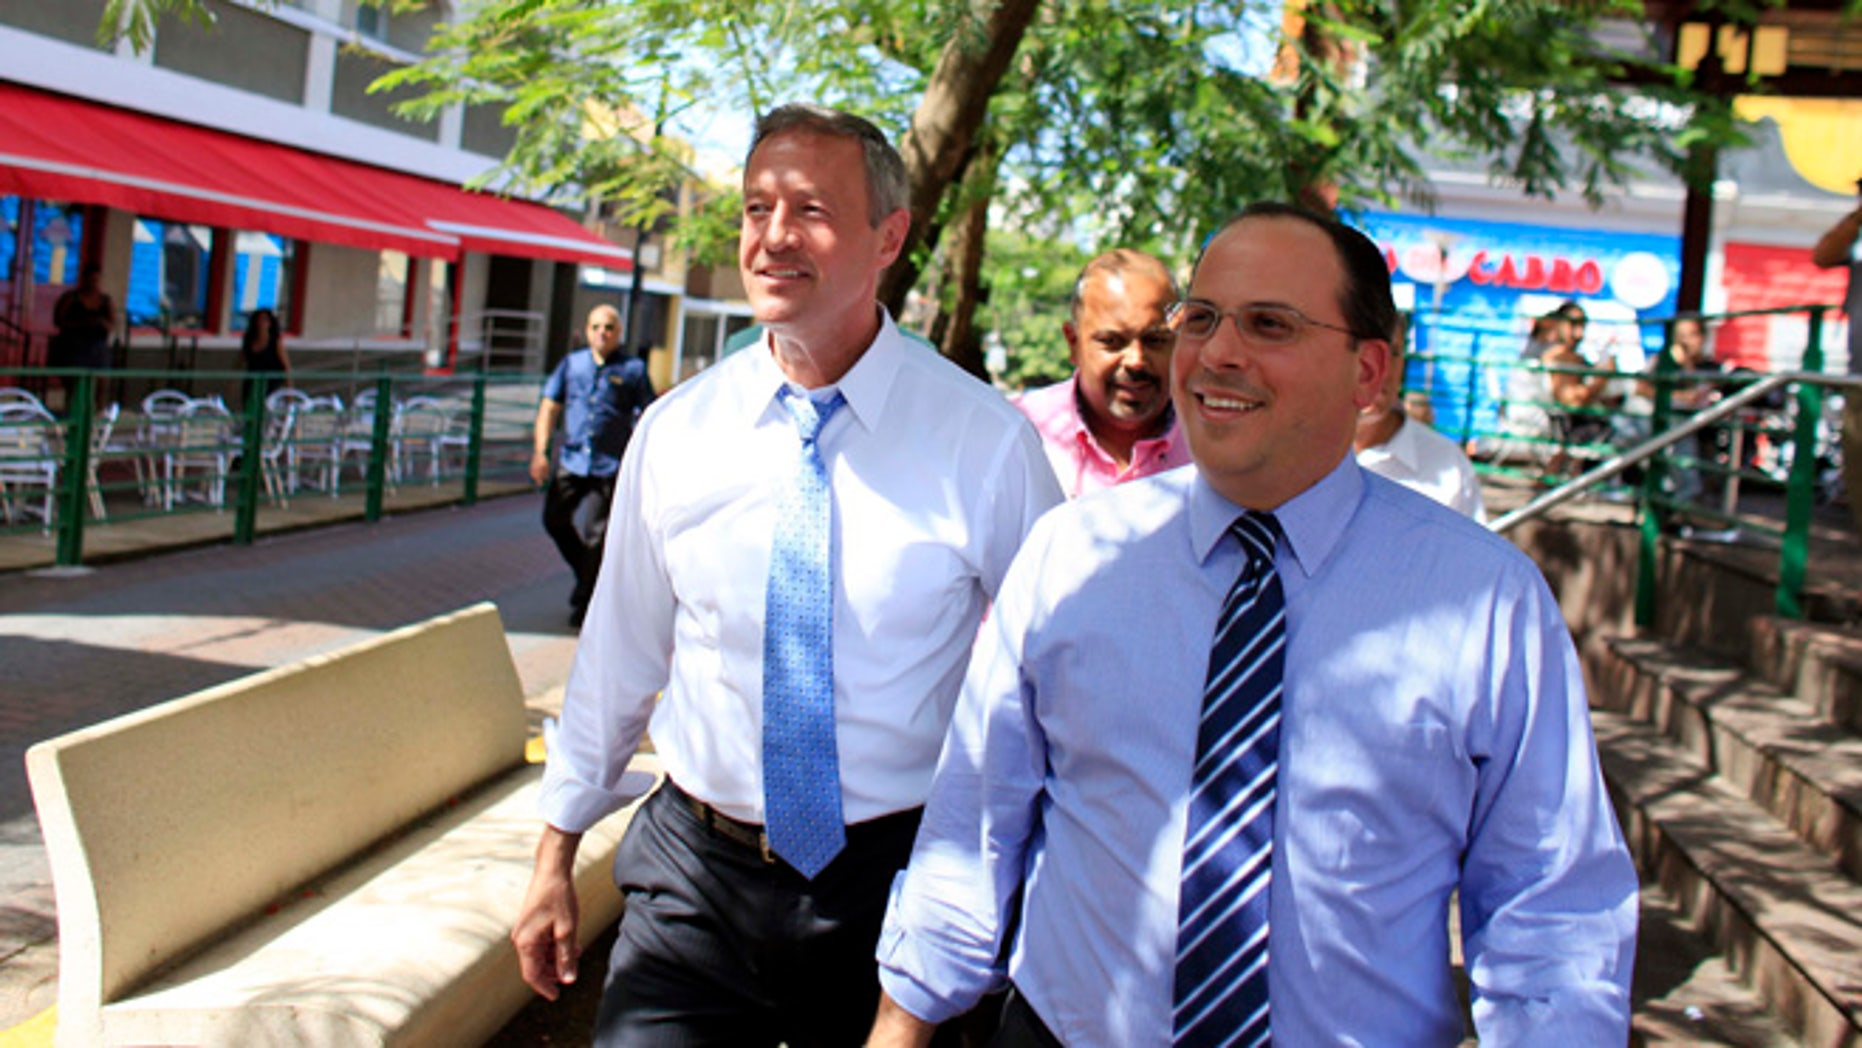 Democratic presidential candidate, former Maryland Gov. Martin O'Malley, left, walks with Jaime Perello, speaker of Puerto Ricoâs House of Representatives during a campaign stop in San Juan, Puerto Rico, Saturday, Aug. 1, 2015. OâMalley is the first Democratic candidate to campaign in Puerto Rico. (AP Photo/Ricardo Arduengo)